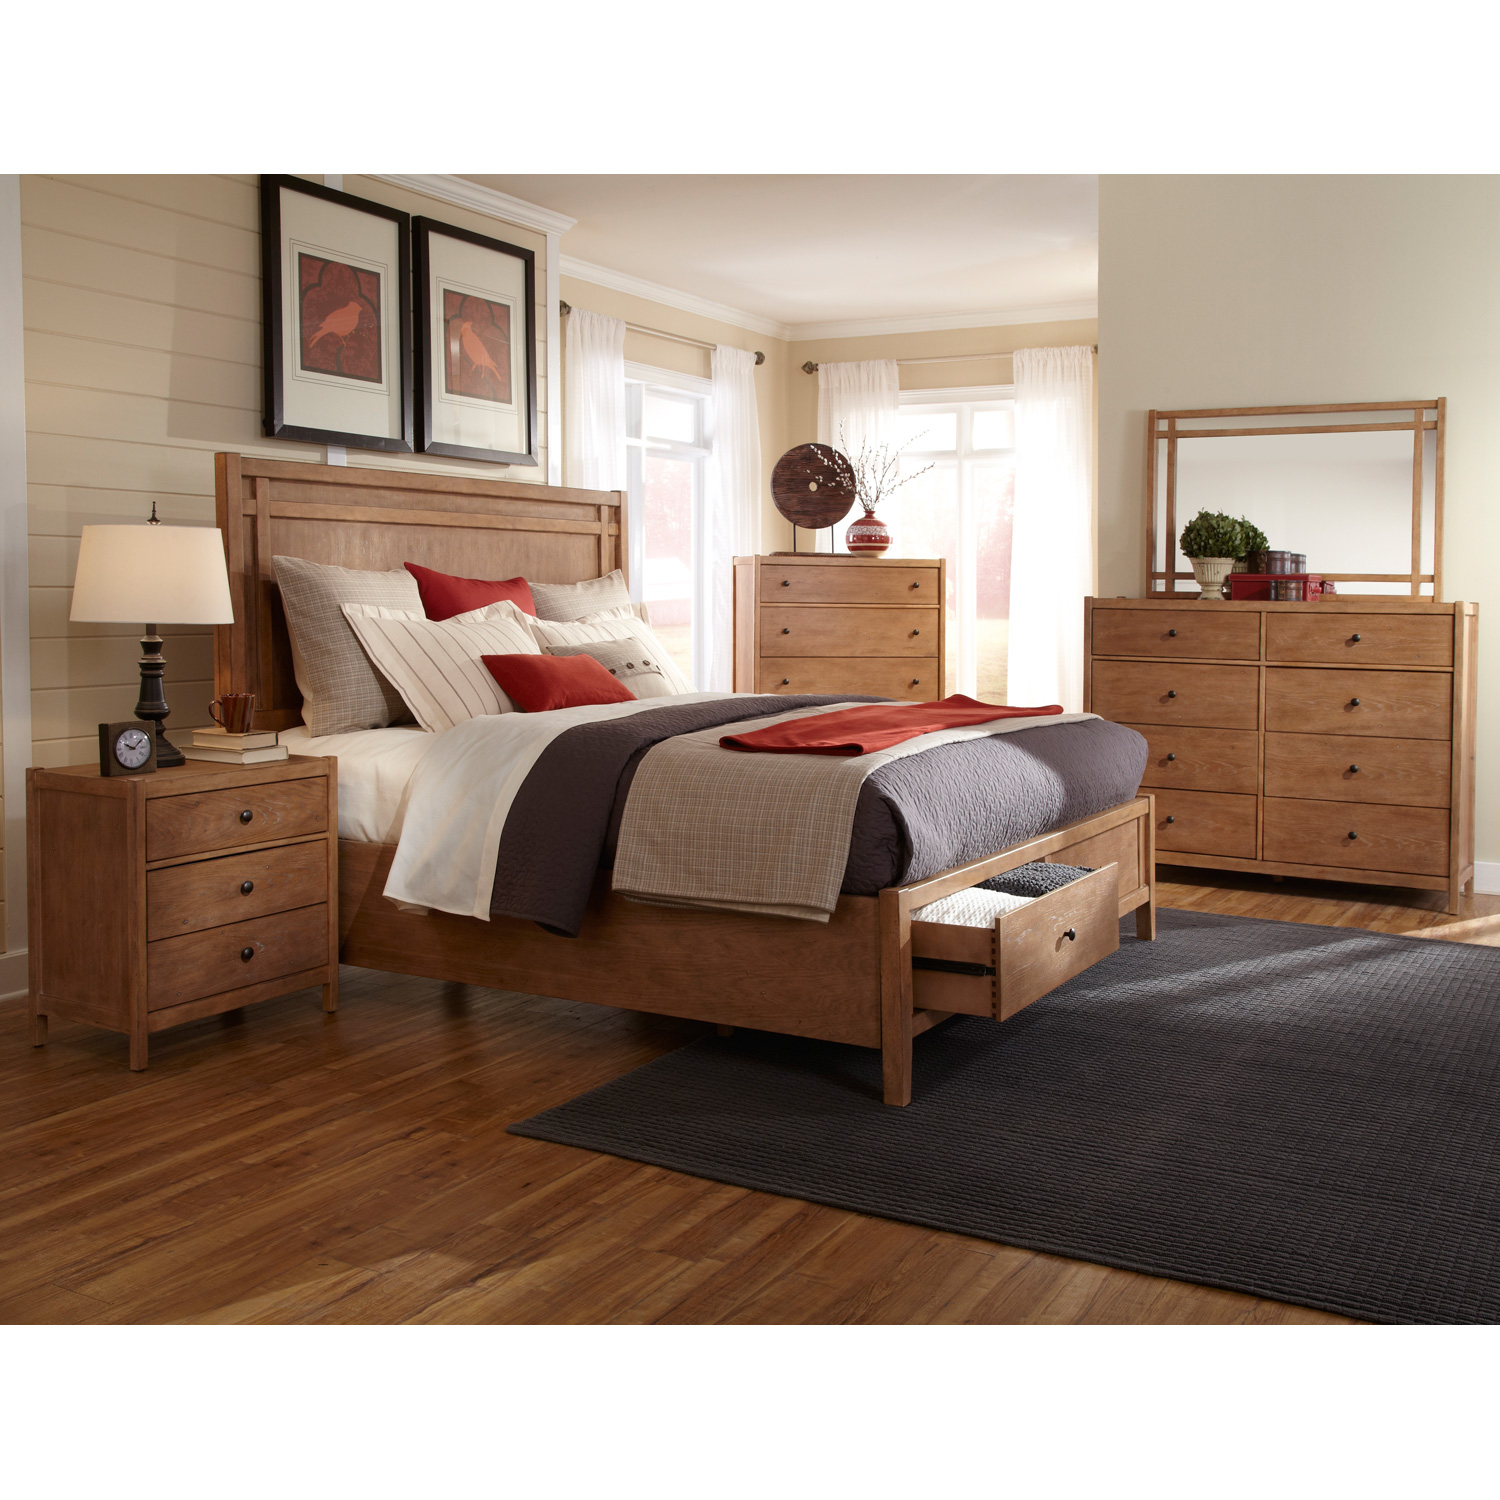 Natural Elements Queen Panel Storage Bed in Soft Driftwood with Off-White Glaze - AW-1000-50PBS